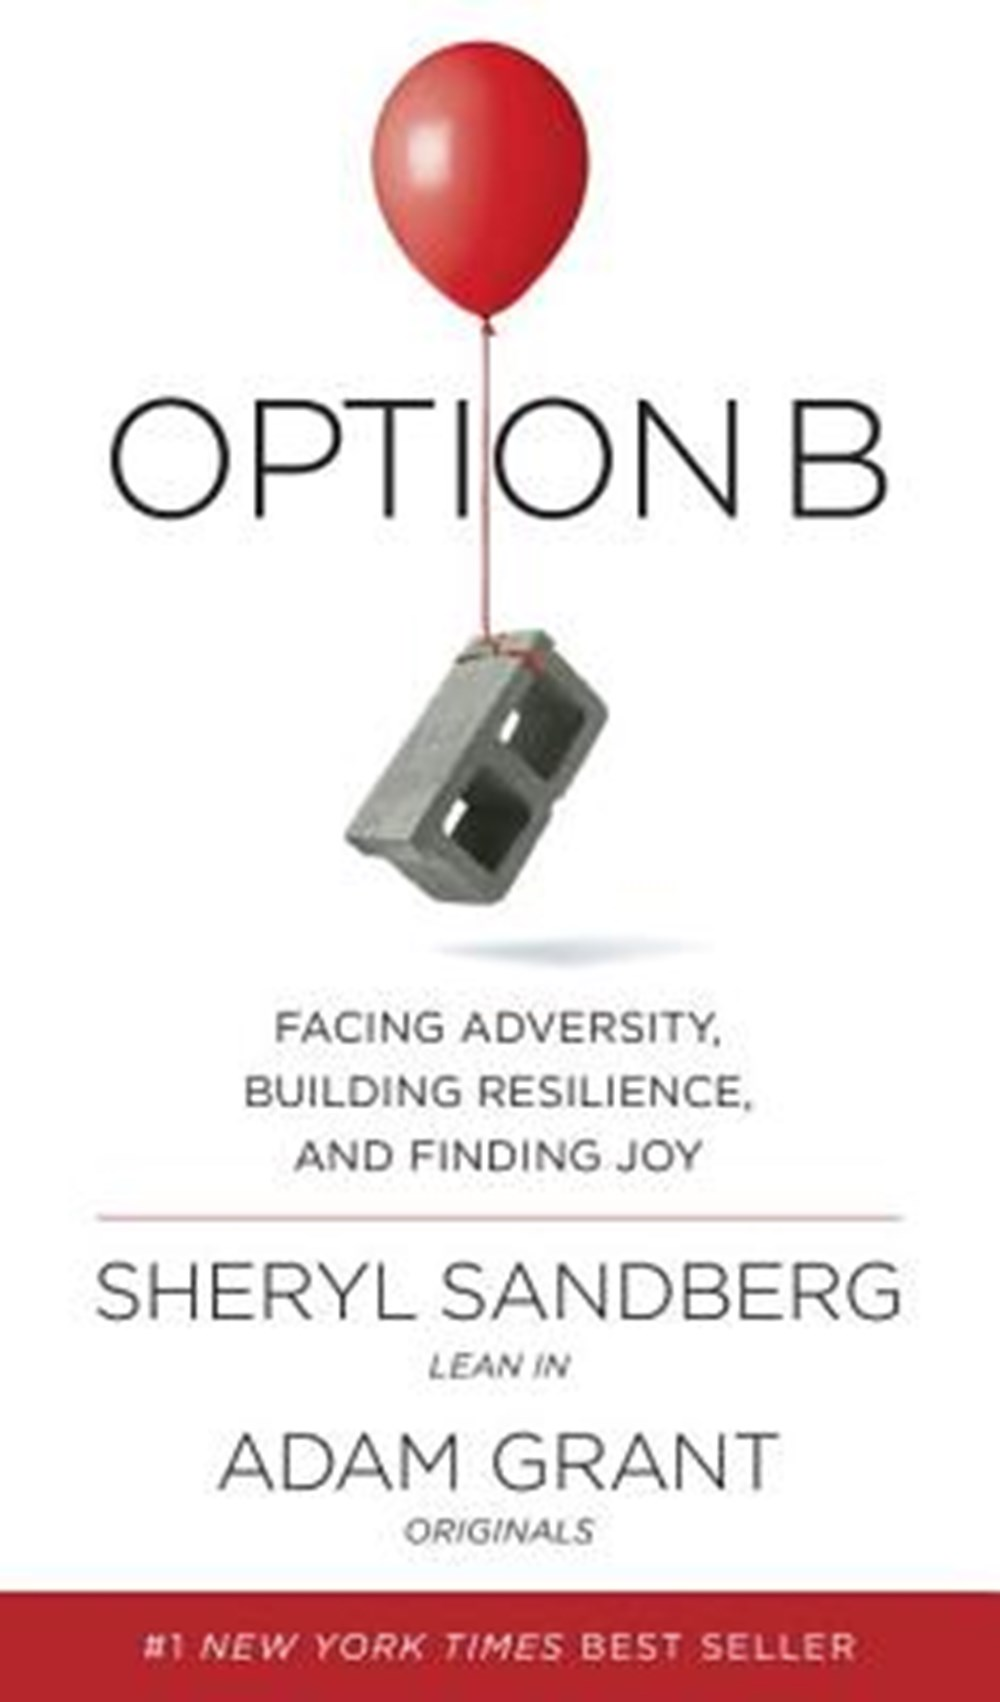 Option B Facing Adversity, Building Resilience, and Finding Joy